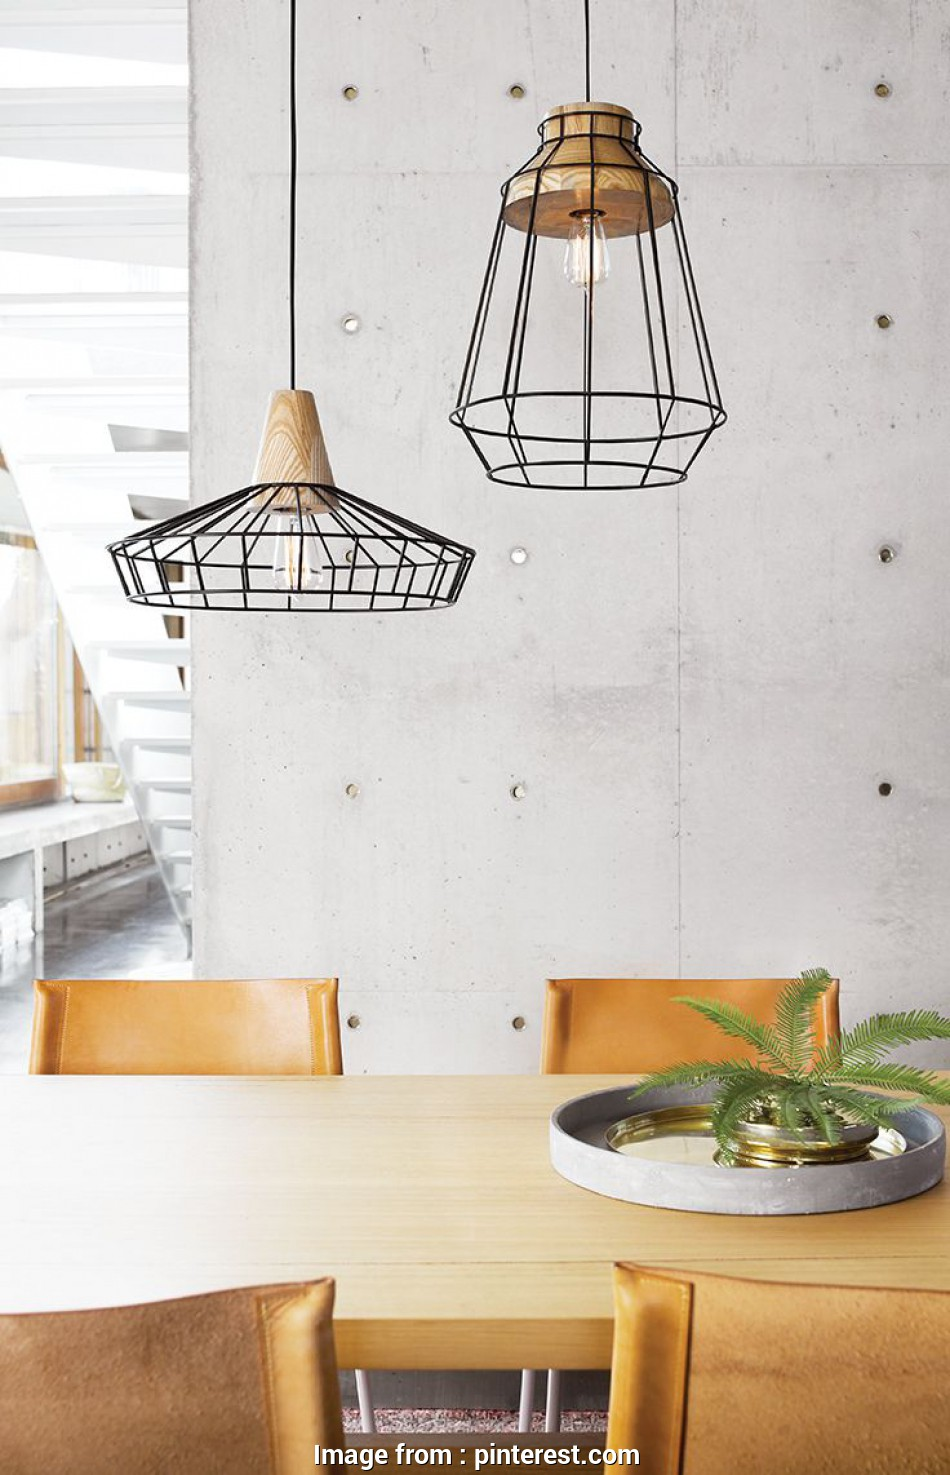 wood and wire pendant light The Beacon Lighting Reuben 1 light large black wire pendant with, wood detail 10 Perfect Wood, Wire Pendant Light Solutions